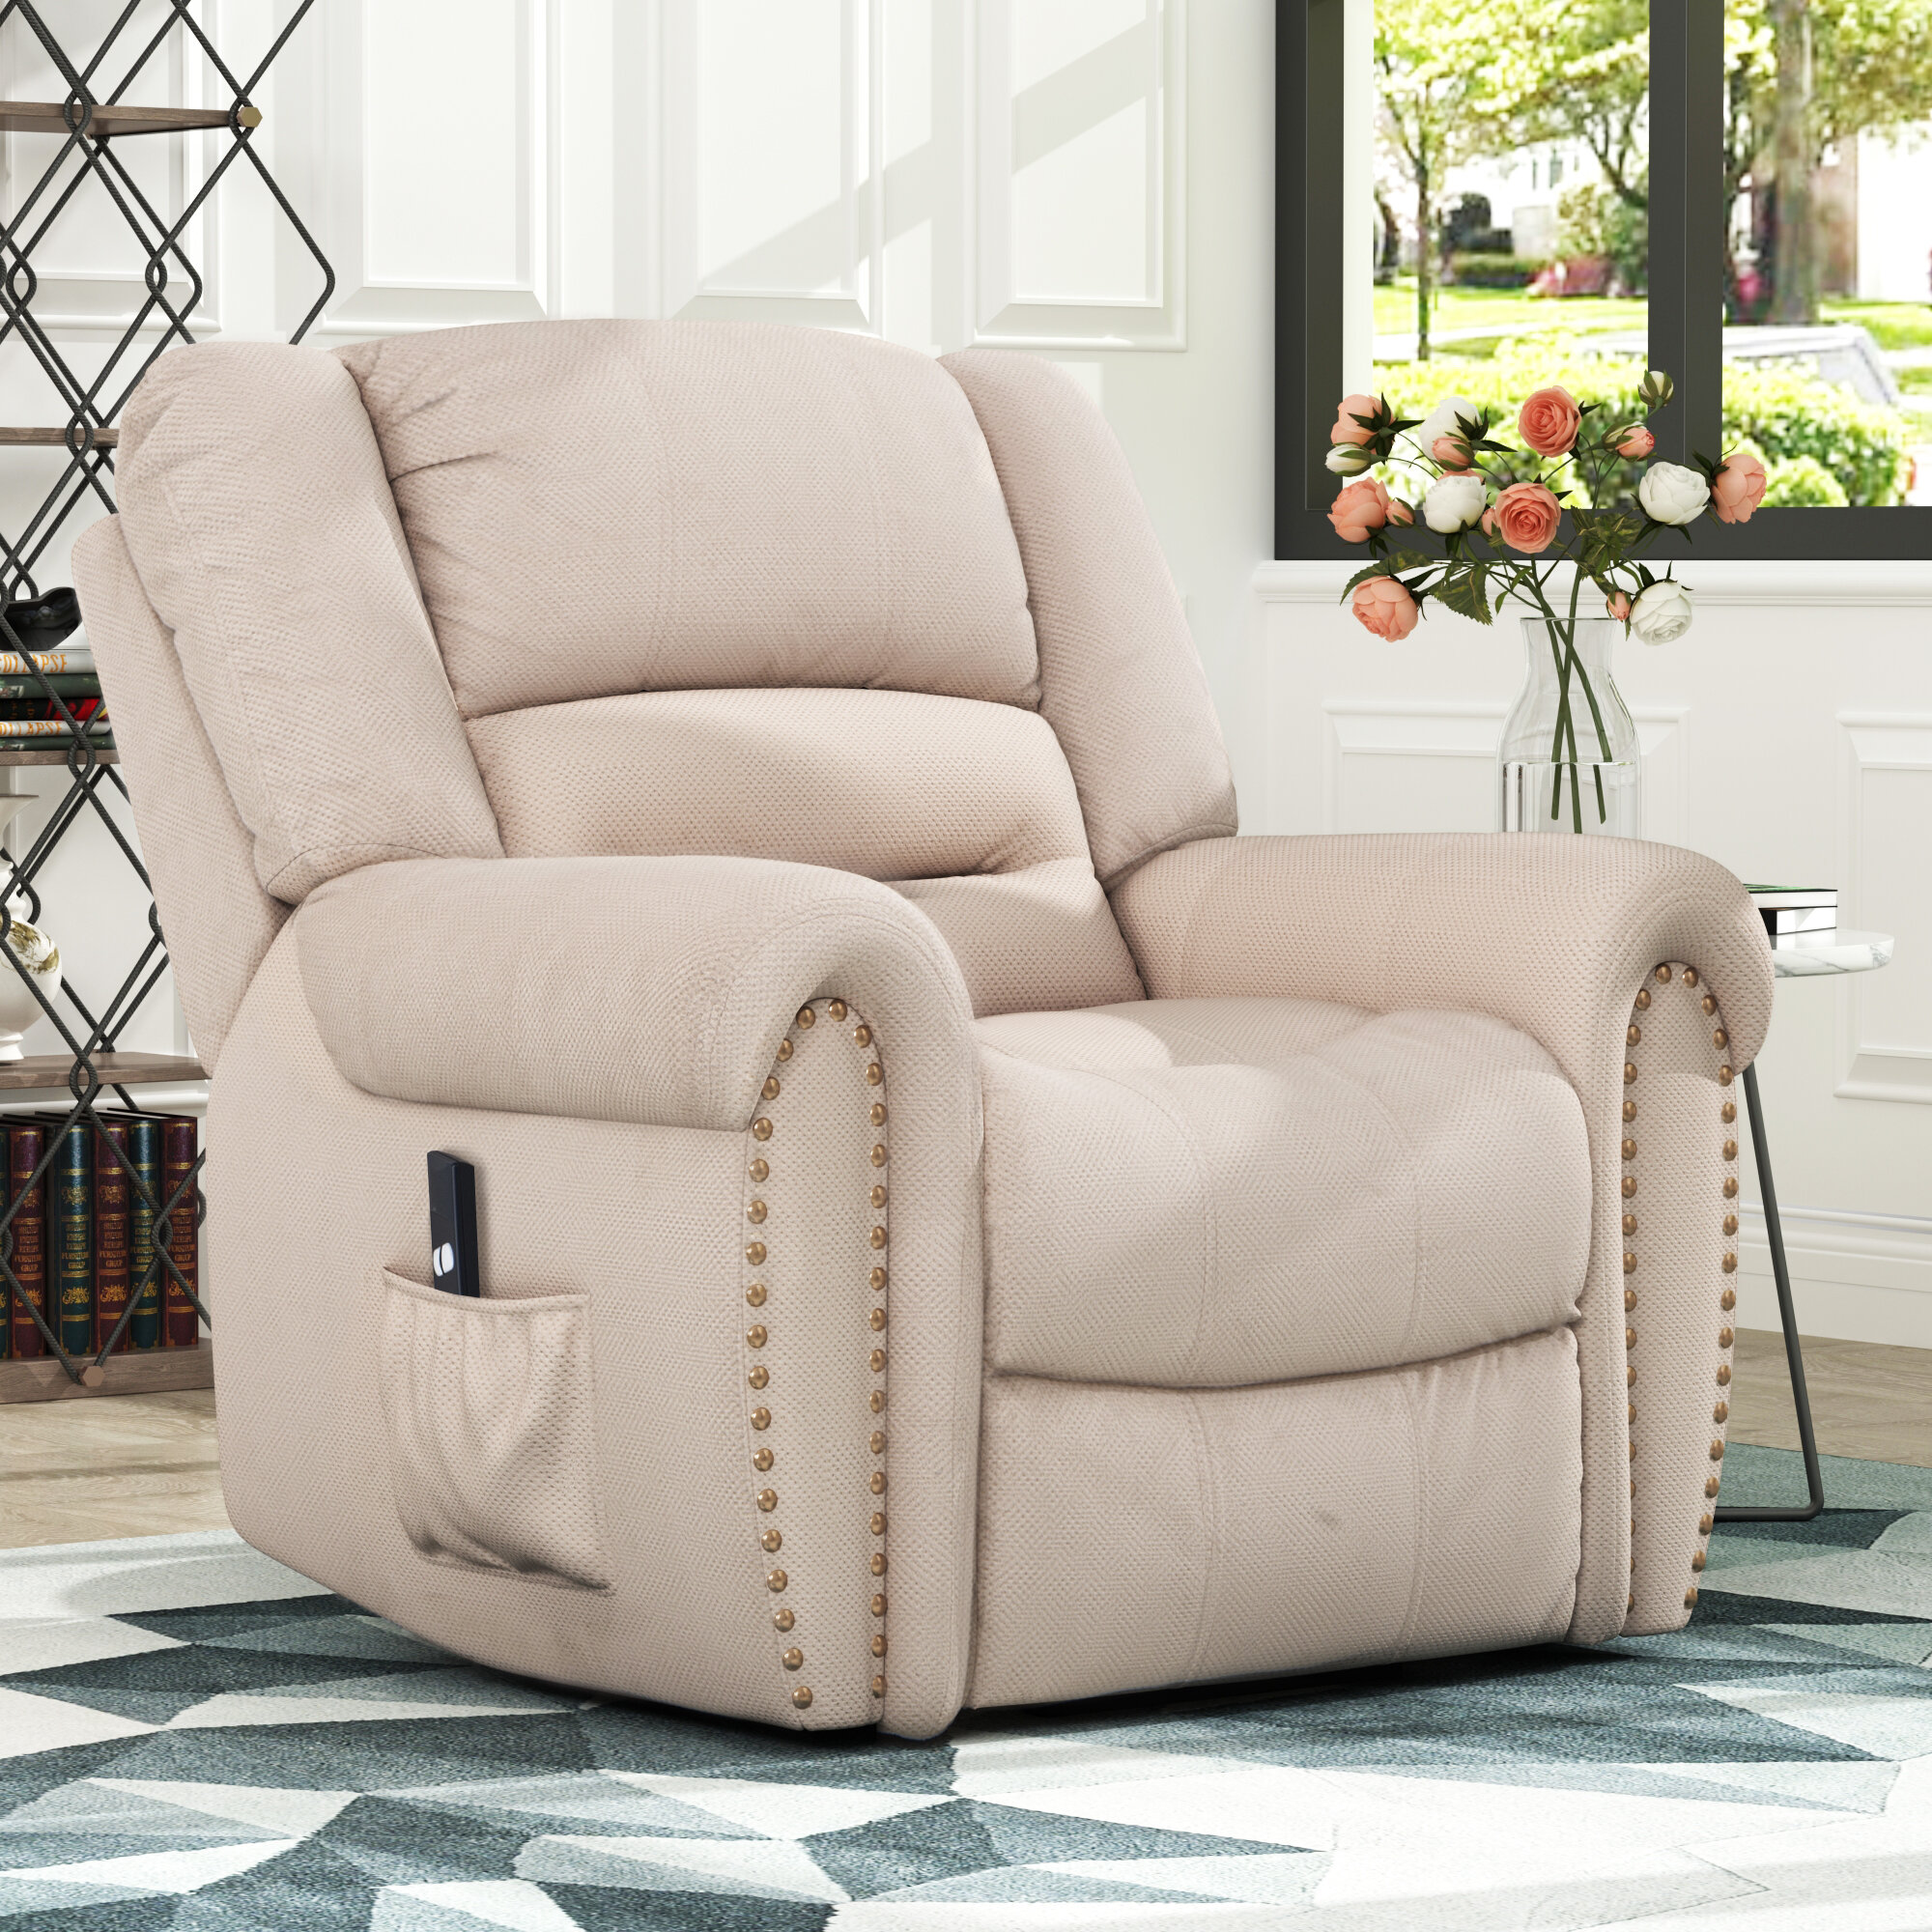 Red Barrel Studio Aquia Faux Leather Power Lift Assist Recliner Wayfair